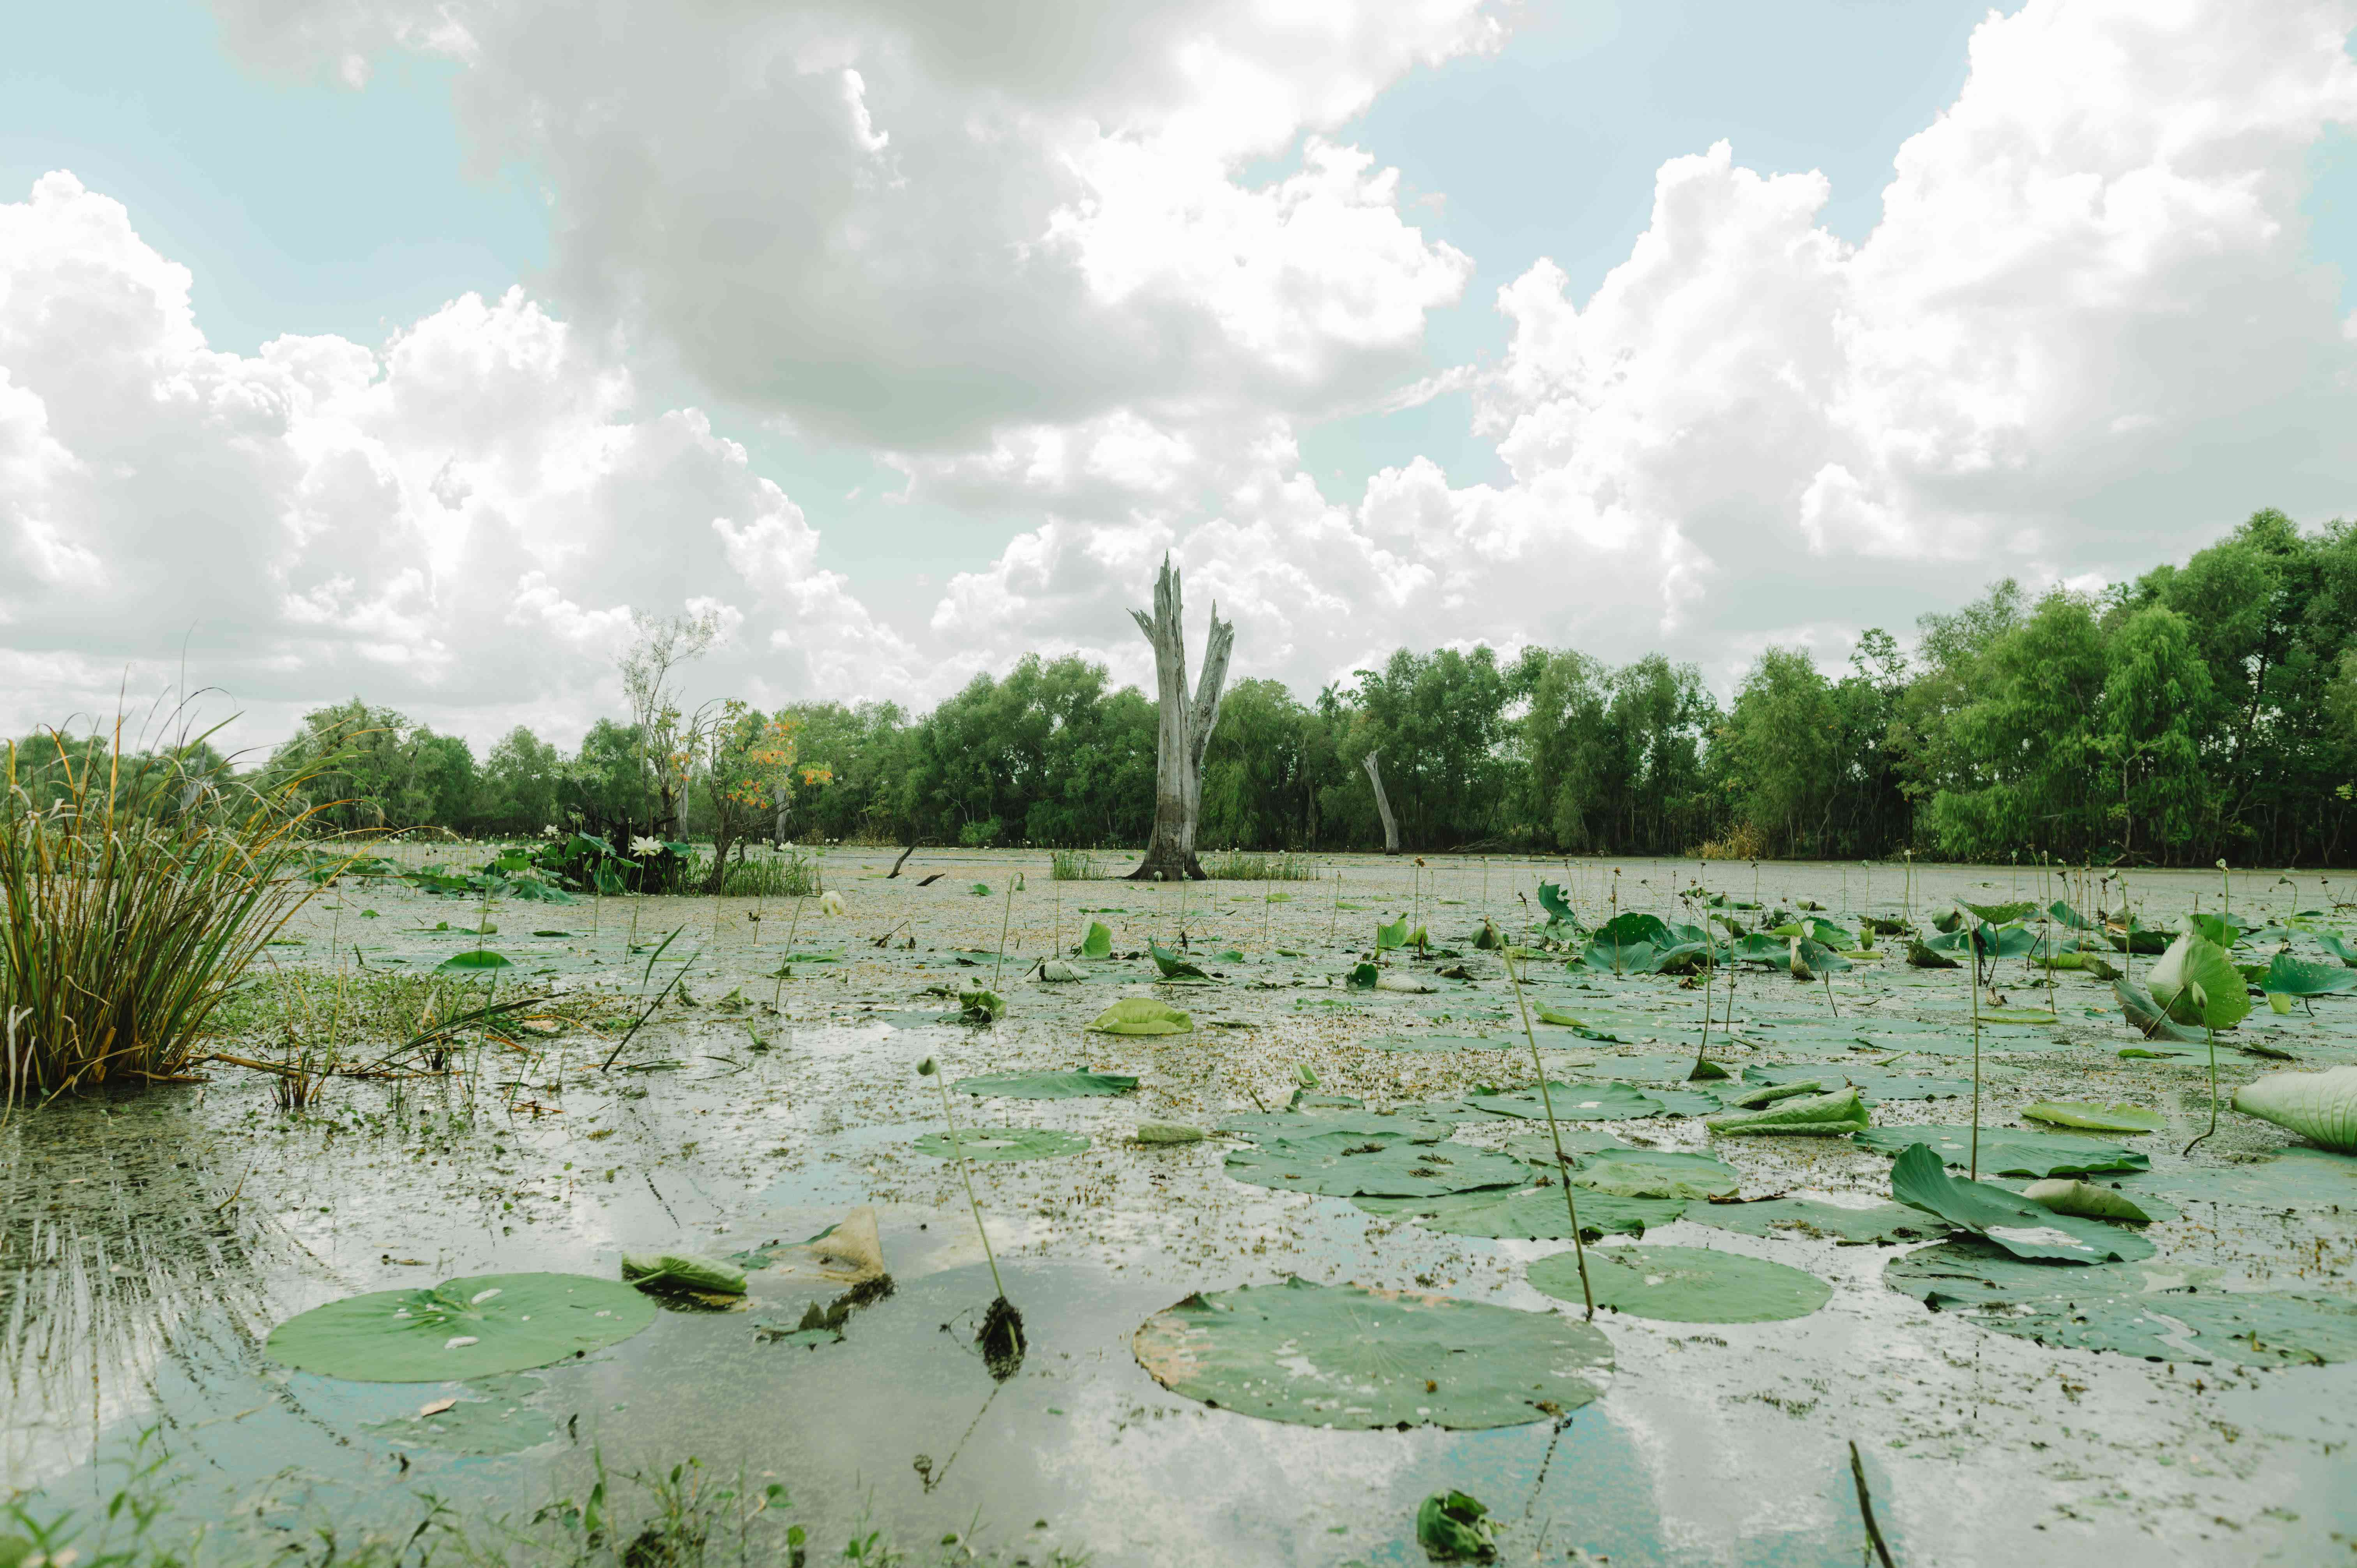 Swampy water covered in lilly pads in Brazos Bend State Park